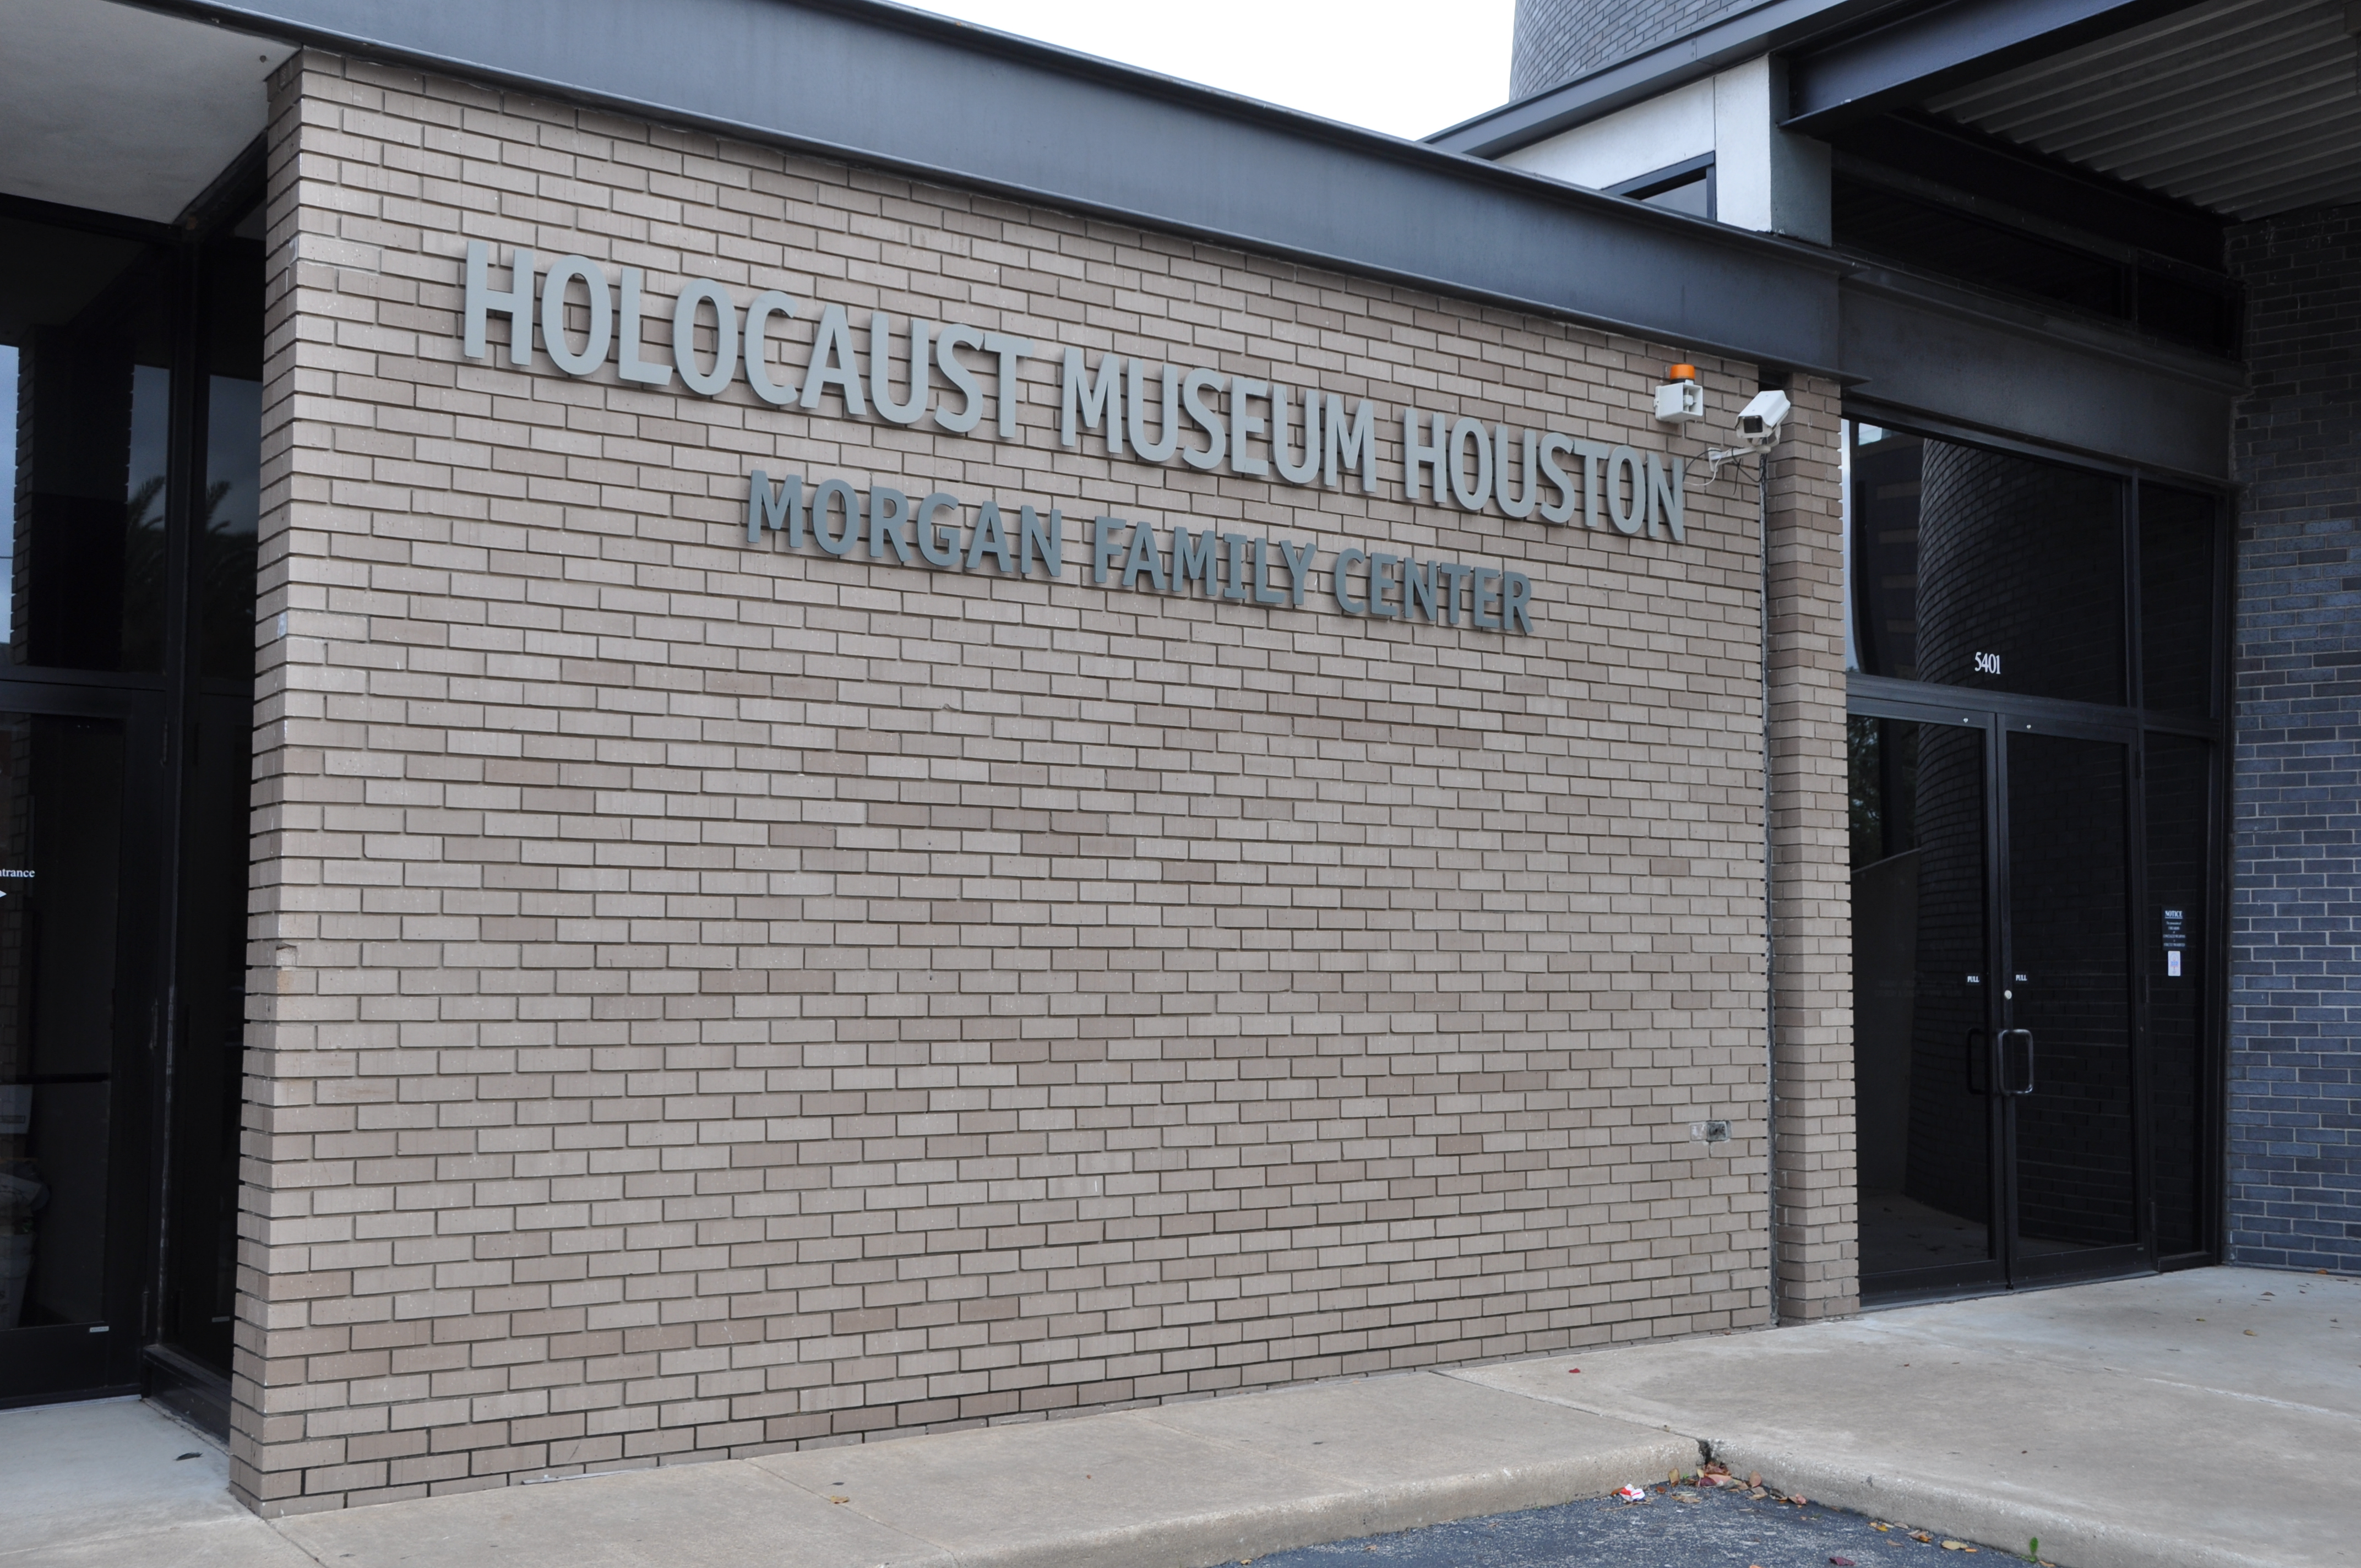 File:Houston Holocaust Museum Entrance.jpg